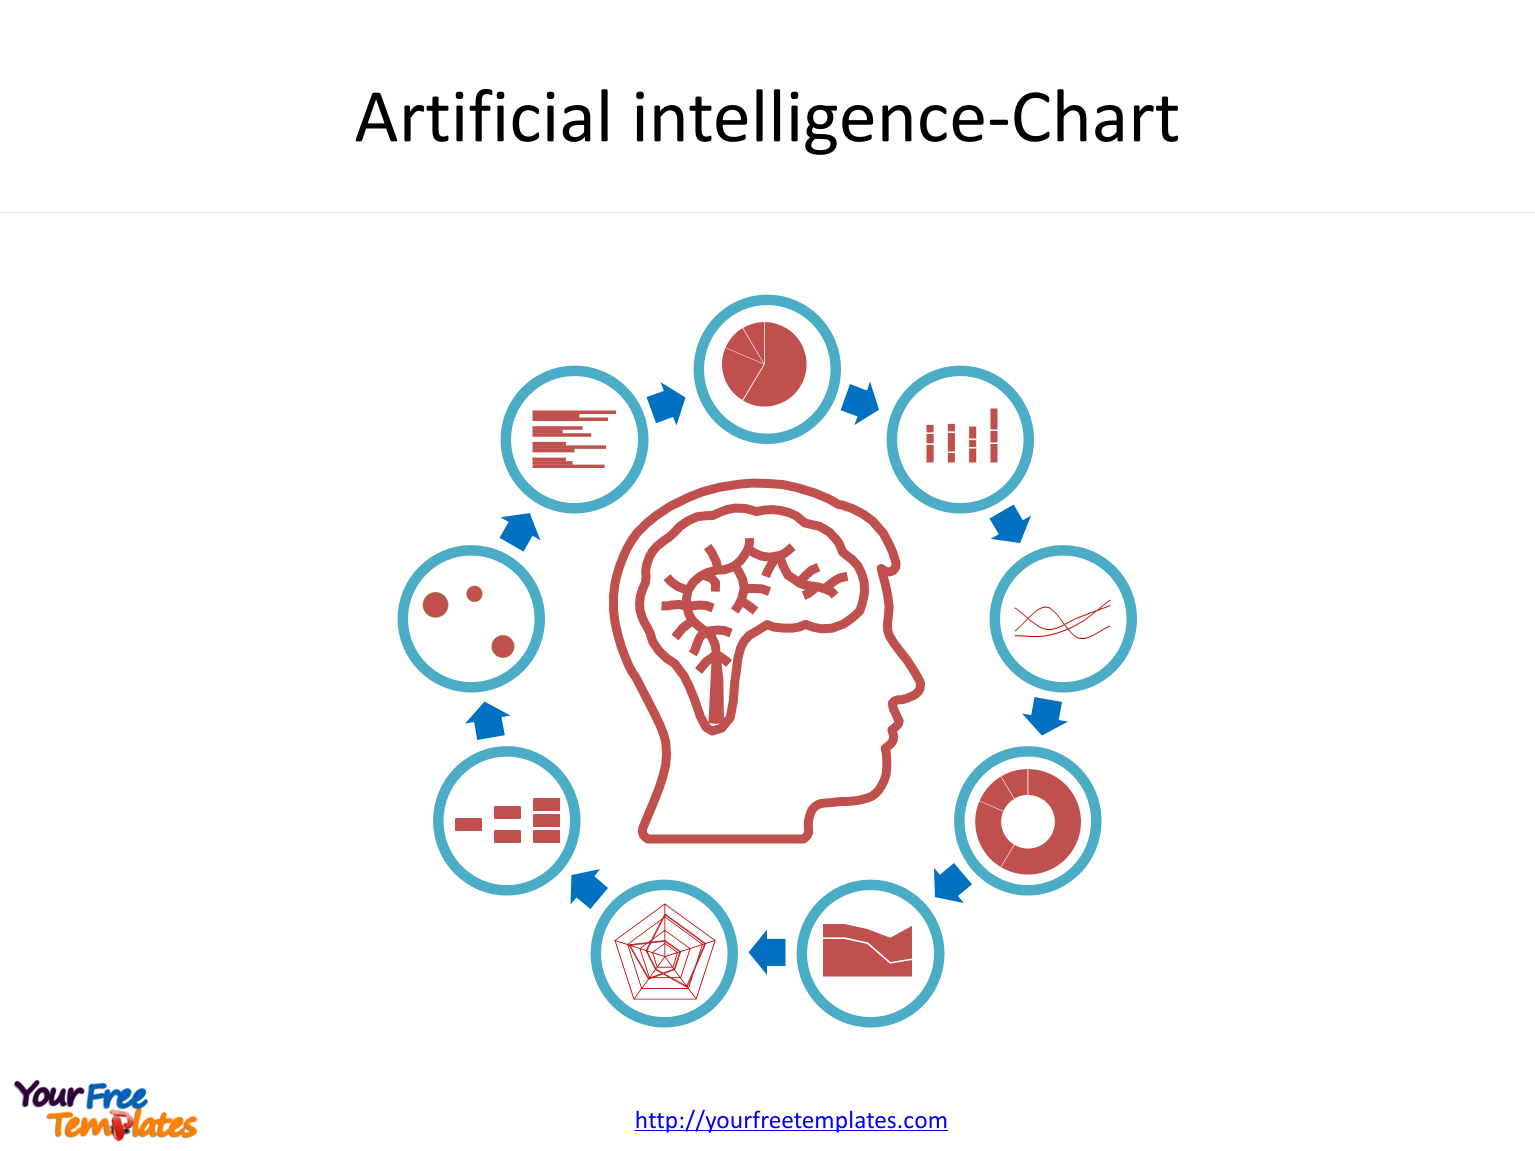 Artificial intelligence PowerPoint templates with chart icons